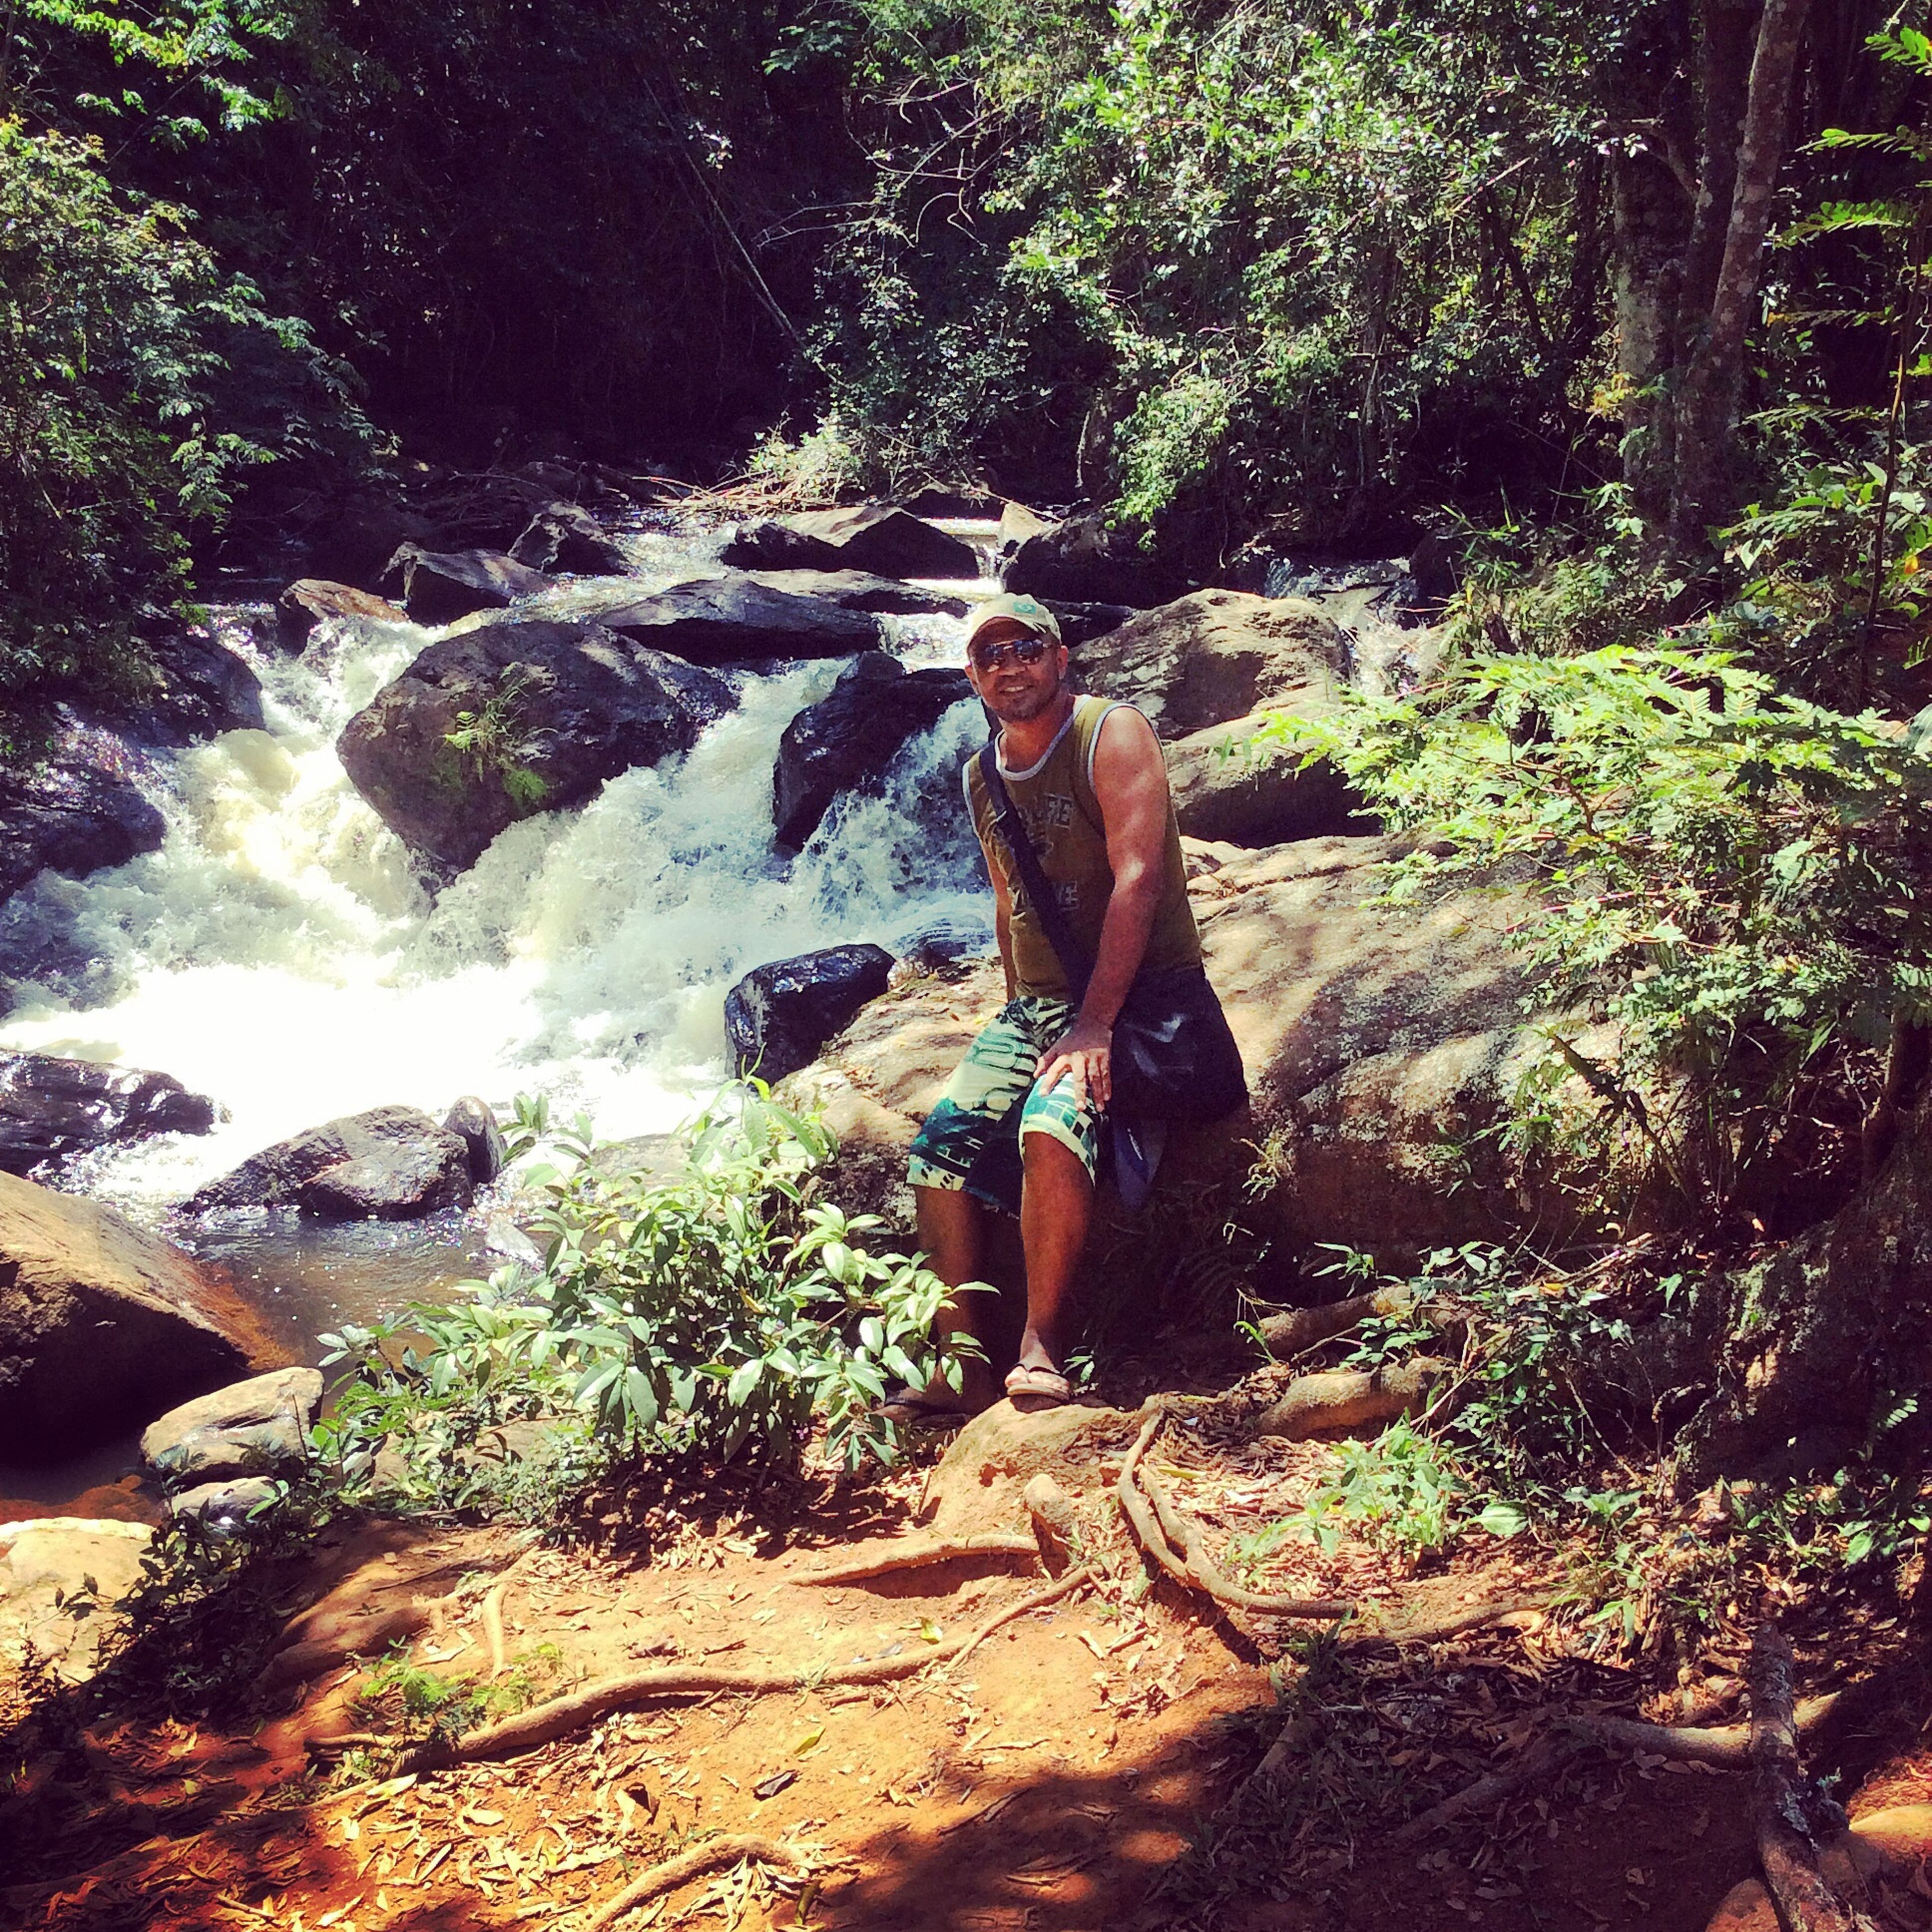 lifestyles, leisure activity, water, full length, rock - object, tree, vacations, forest, men, nature, adventure, motion, young adult, waterfall, enjoyment, beauty in nature, casual clothing, day